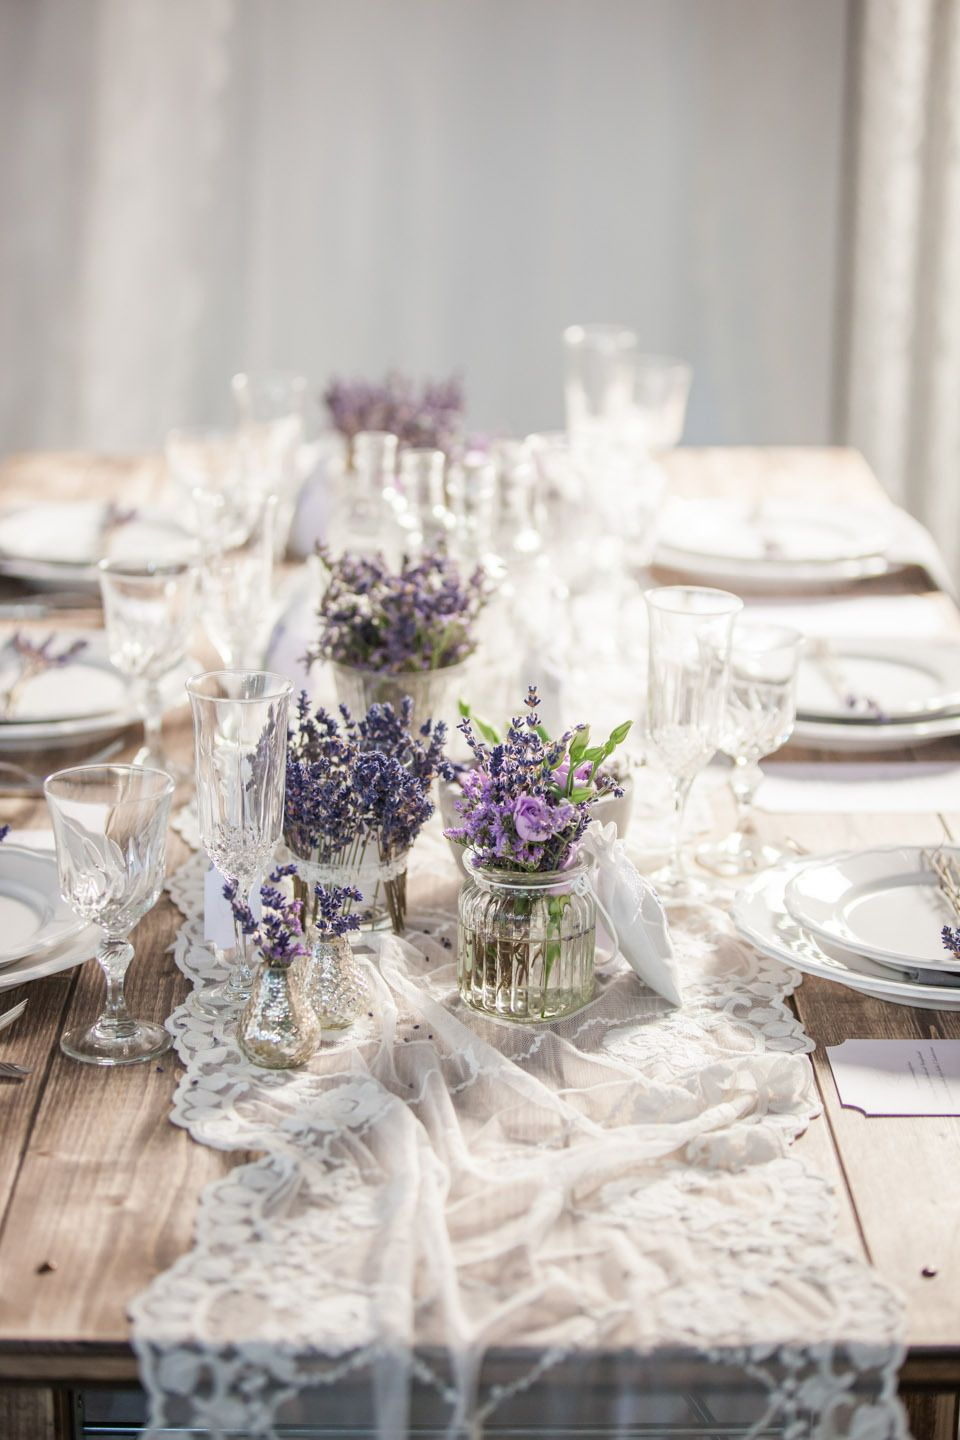 Syflove romantic table setting party ideas pinterest lavender wedding decor ideas are very exquisite and beautiful subtle lavender shades look great in the hall decoration and the table setting junglespirit Gallery